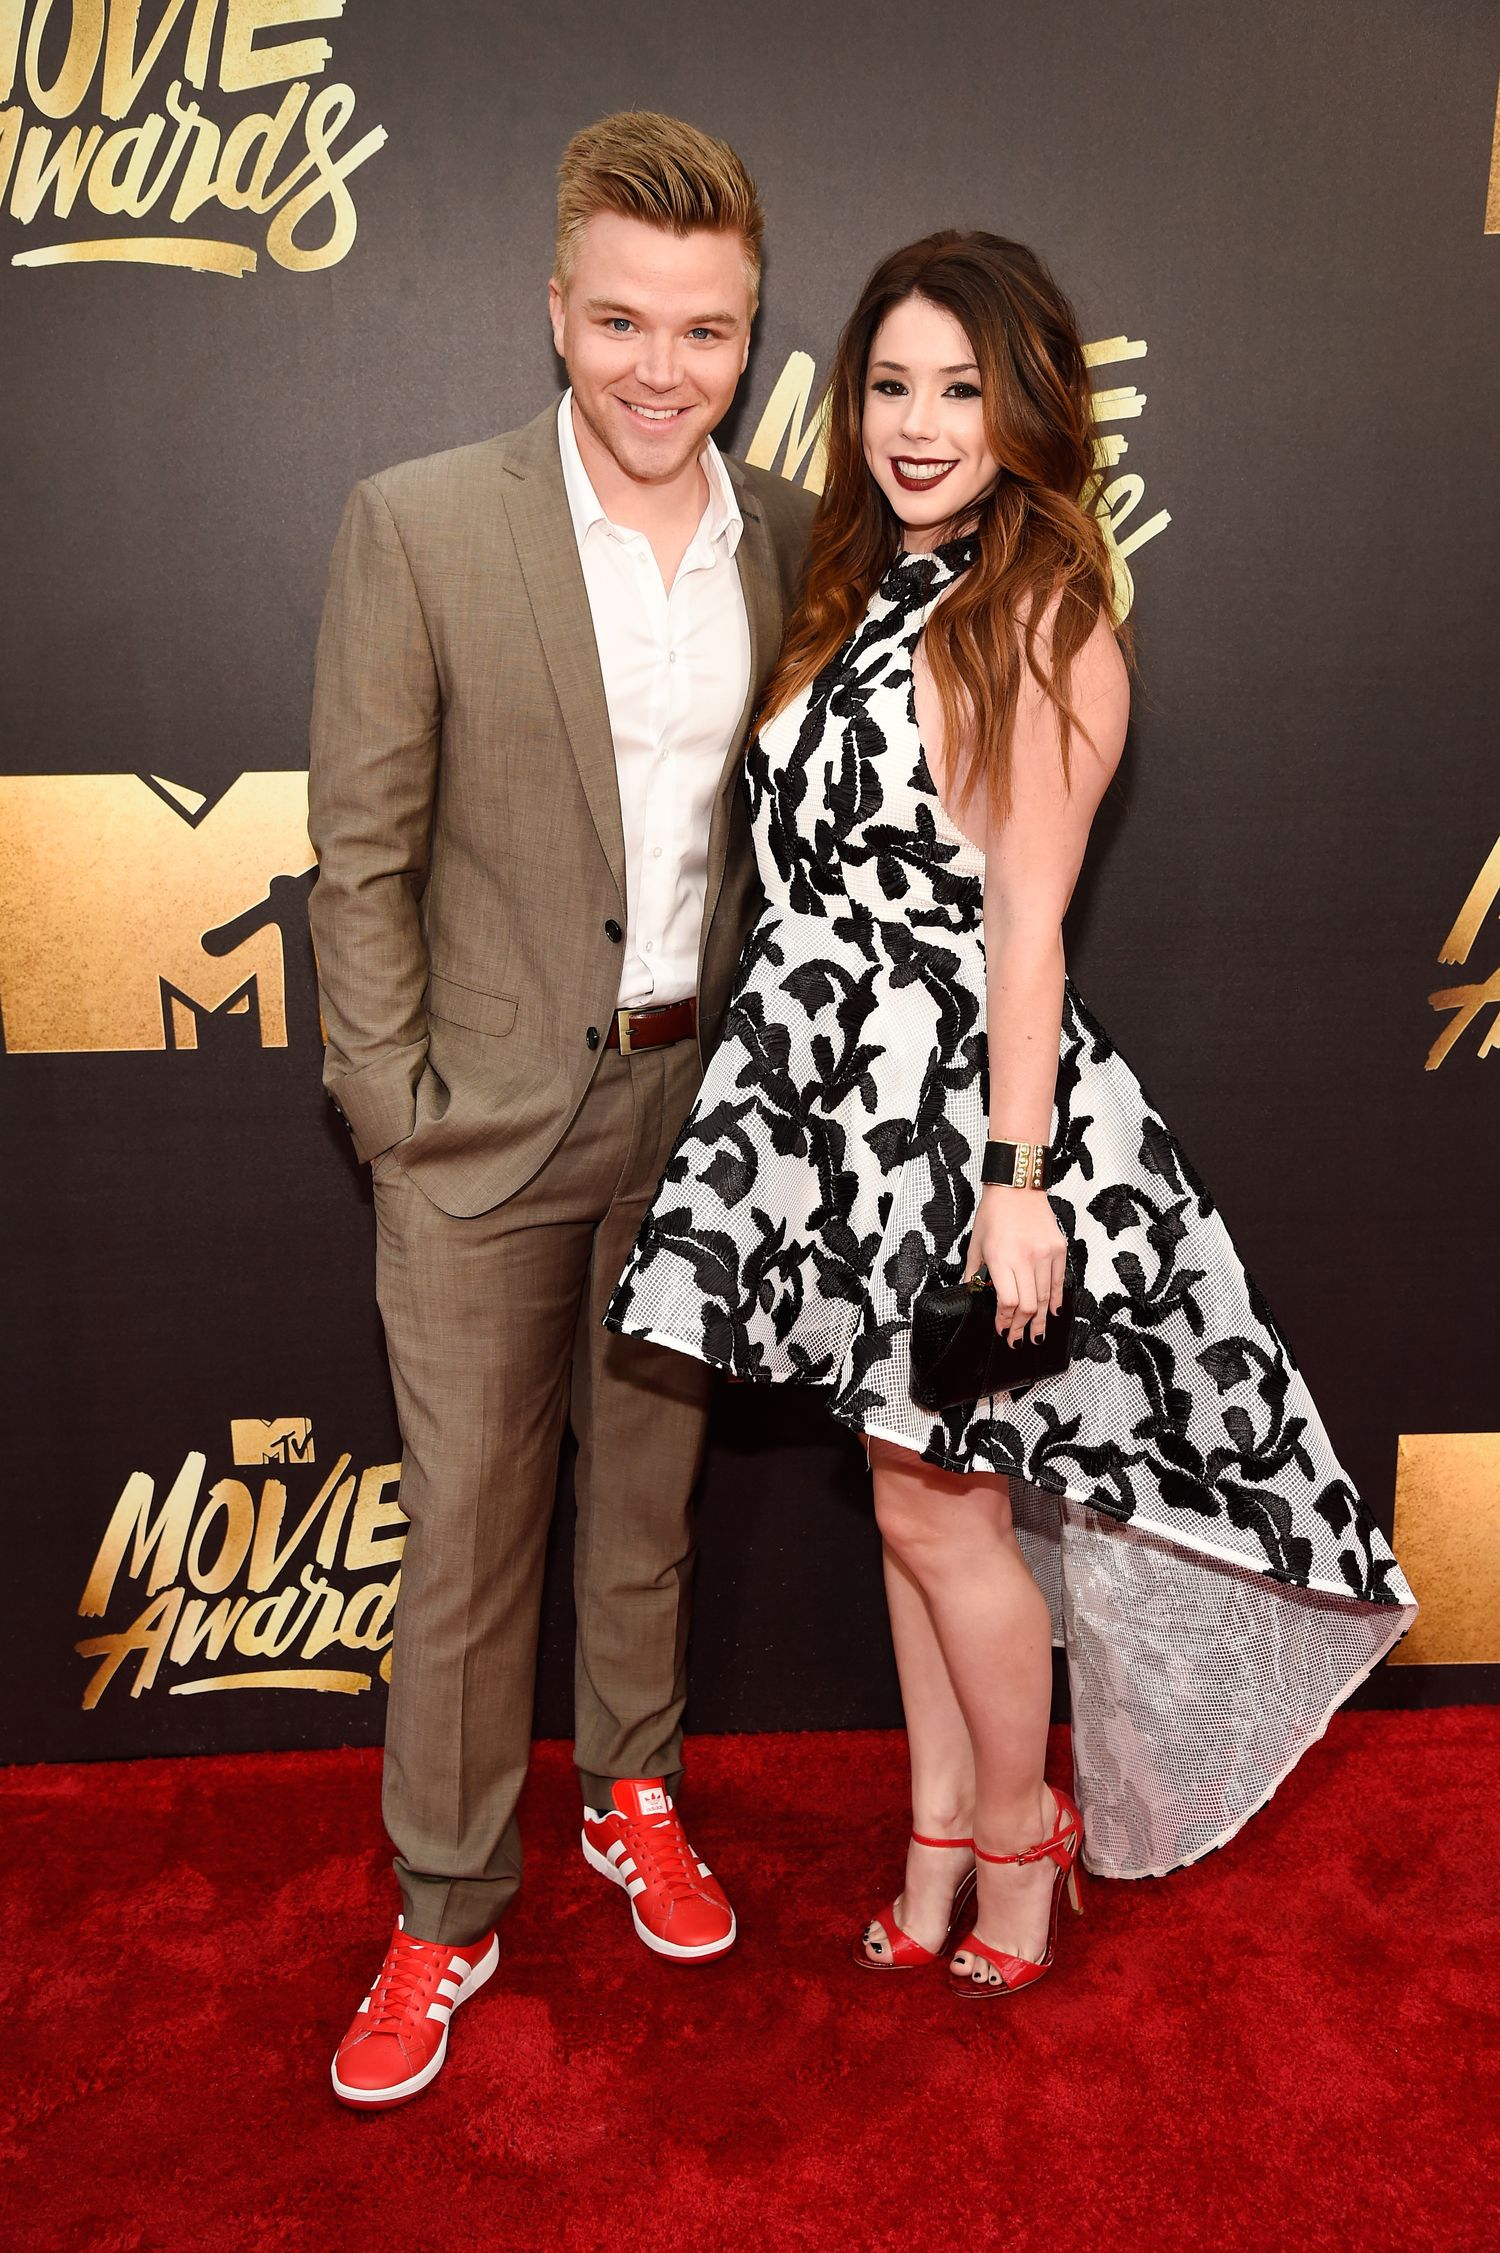 BURBANK, CALIFORNIA - APRIL 09: Actors Brett Davern (L) and Jillian Rose Reed attend the 2016 MTV Movie Awards at Warner Bros. Studios on April 9, 2016 in Burbank, California. MTV Movie Awards airs April 10, 2016 at 8pm ET/PT. (Photo by Kevin Mazur/WireImage for MTV)